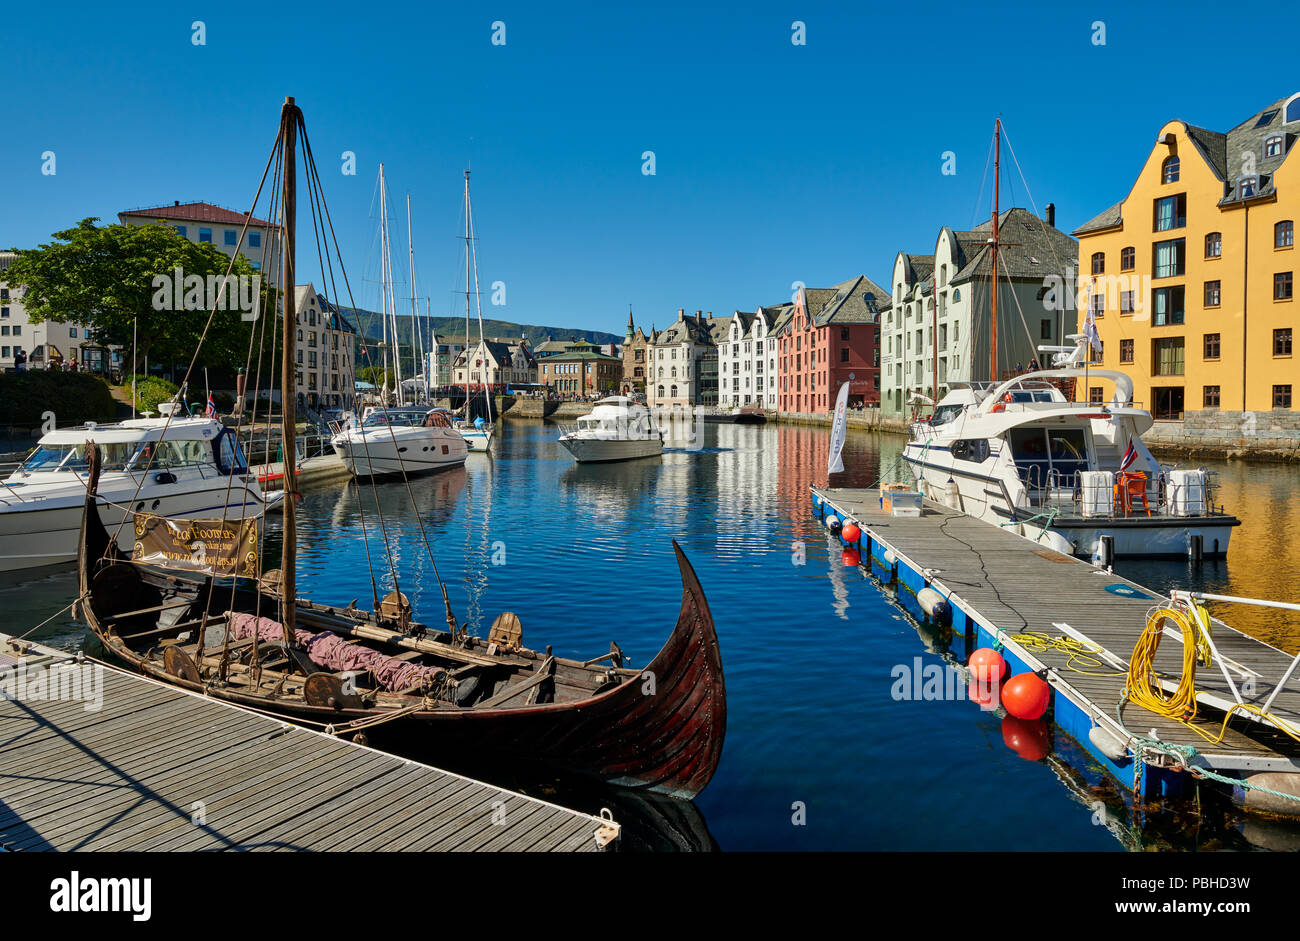 view of old harbor with historical Art Nouveau buildings, Ålesund, Norway, Europe - Stock Image